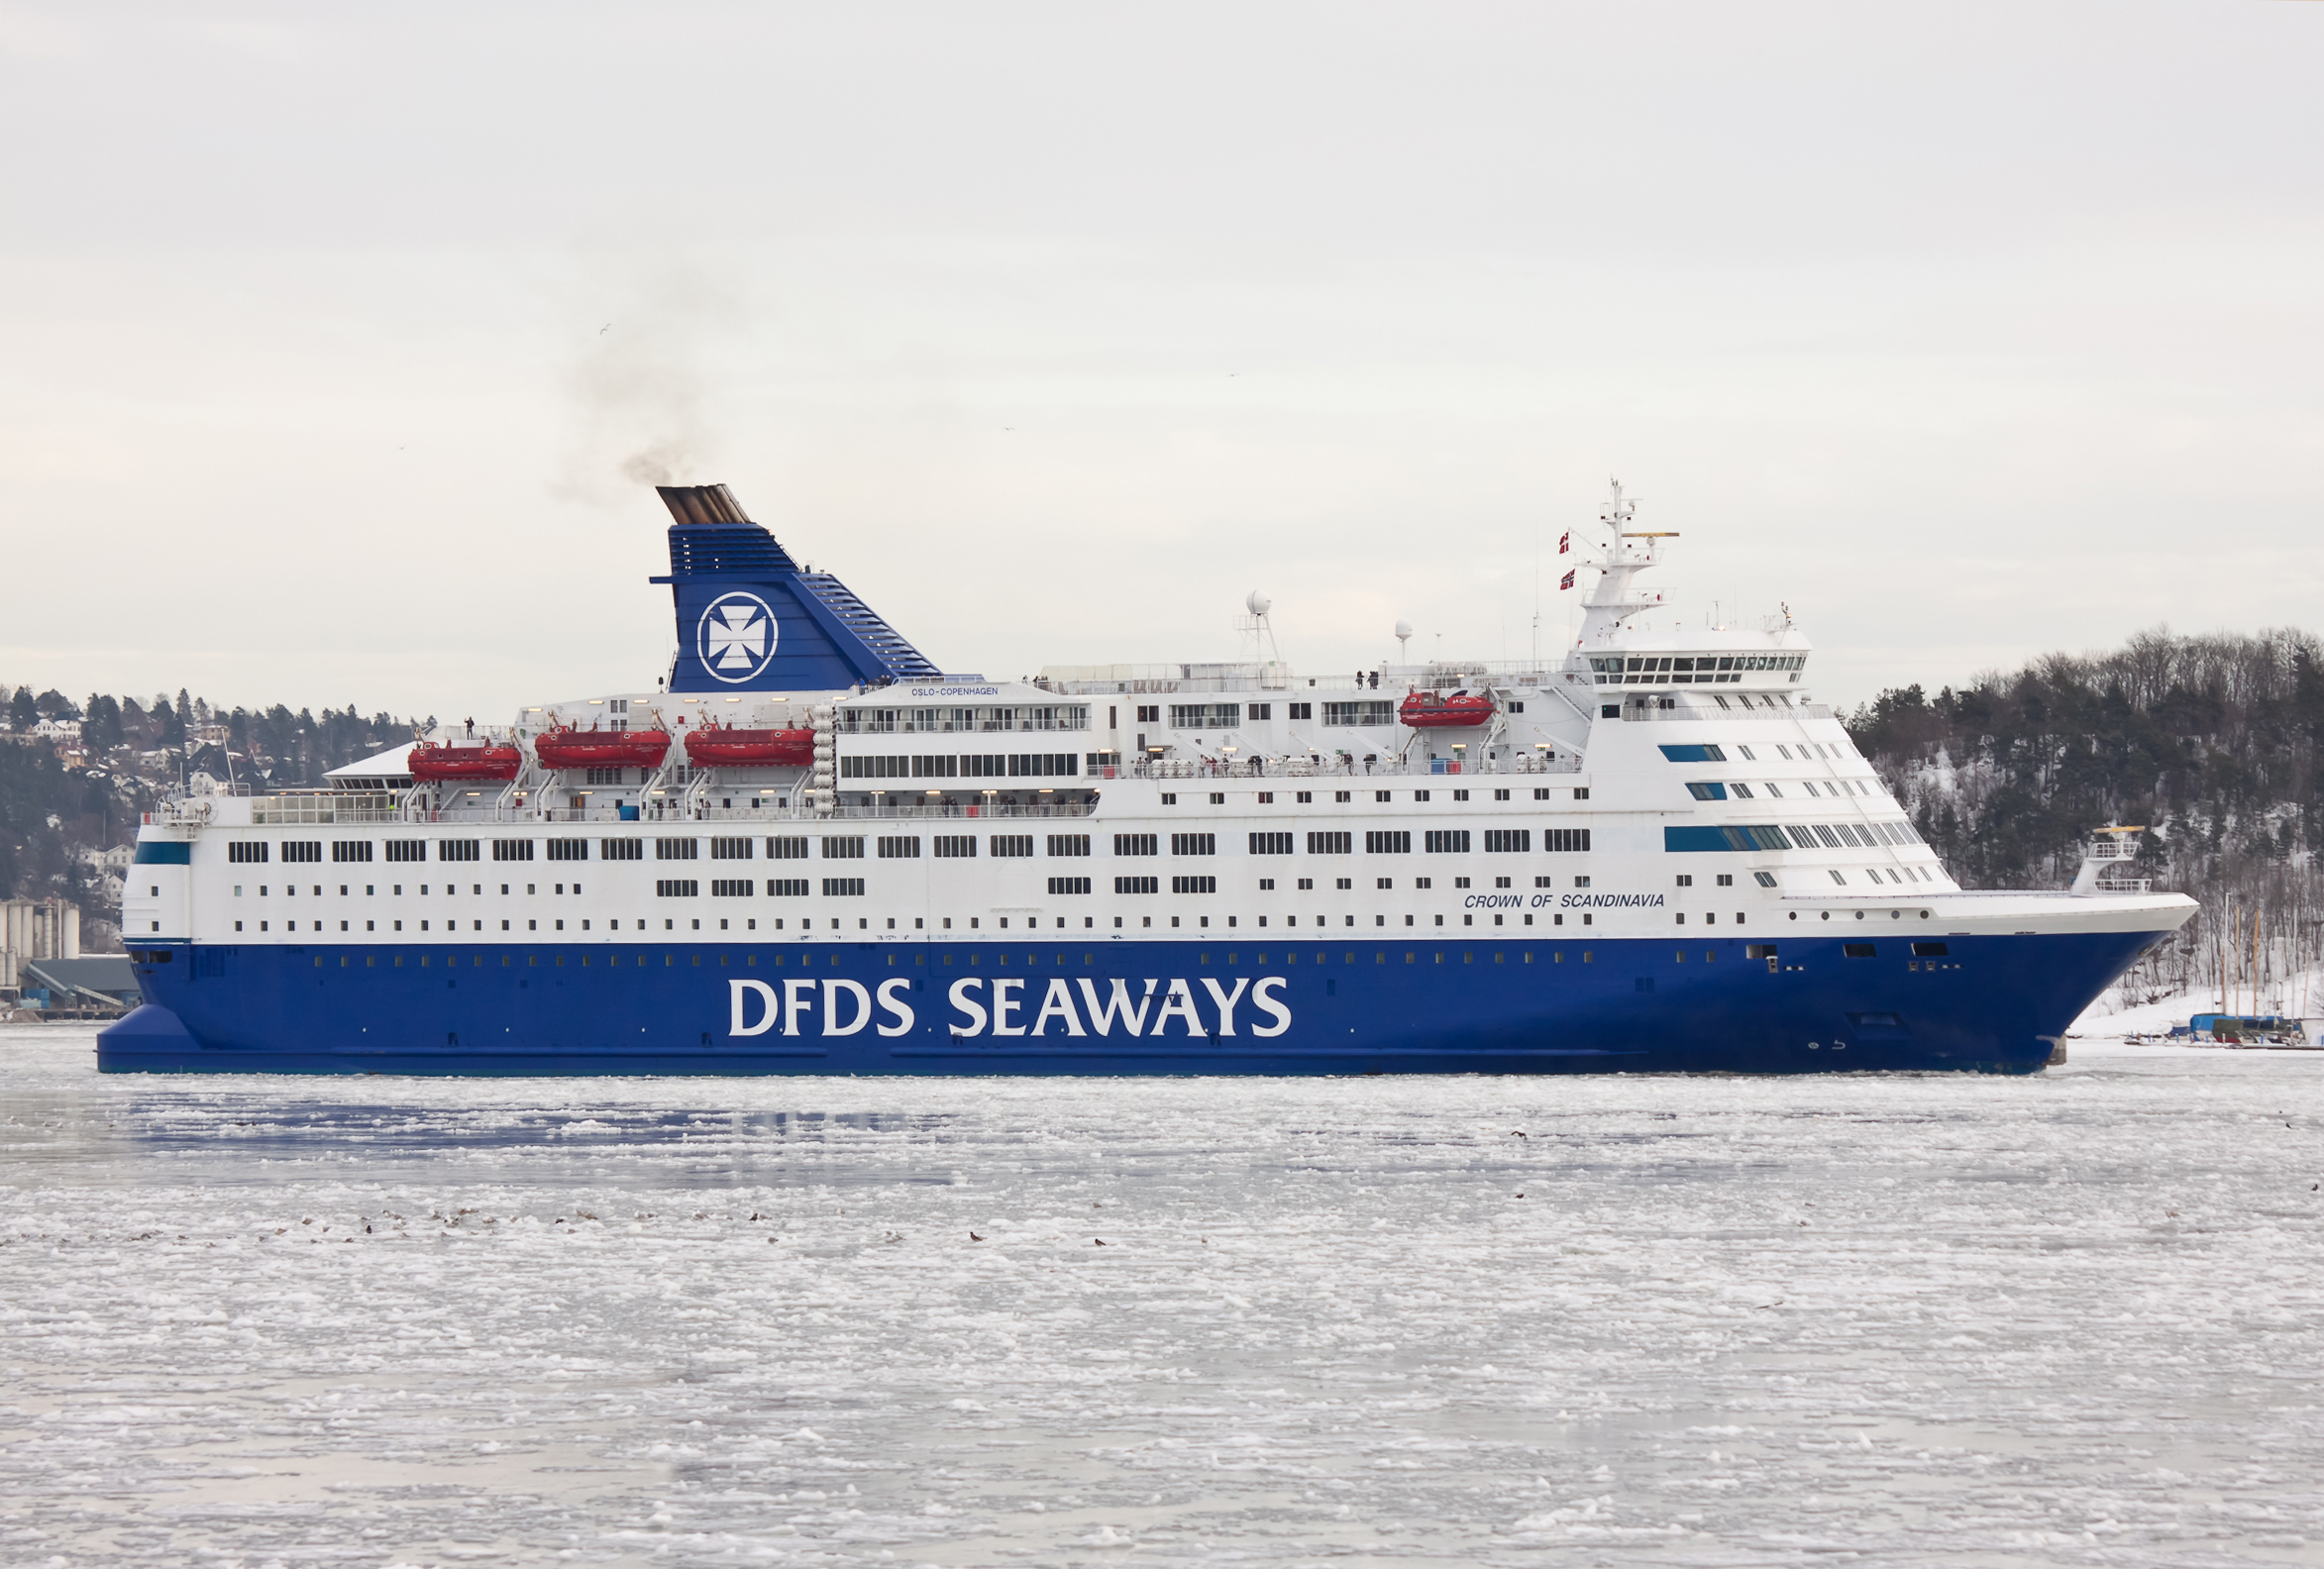 DFDS Seaways - Wikipedia